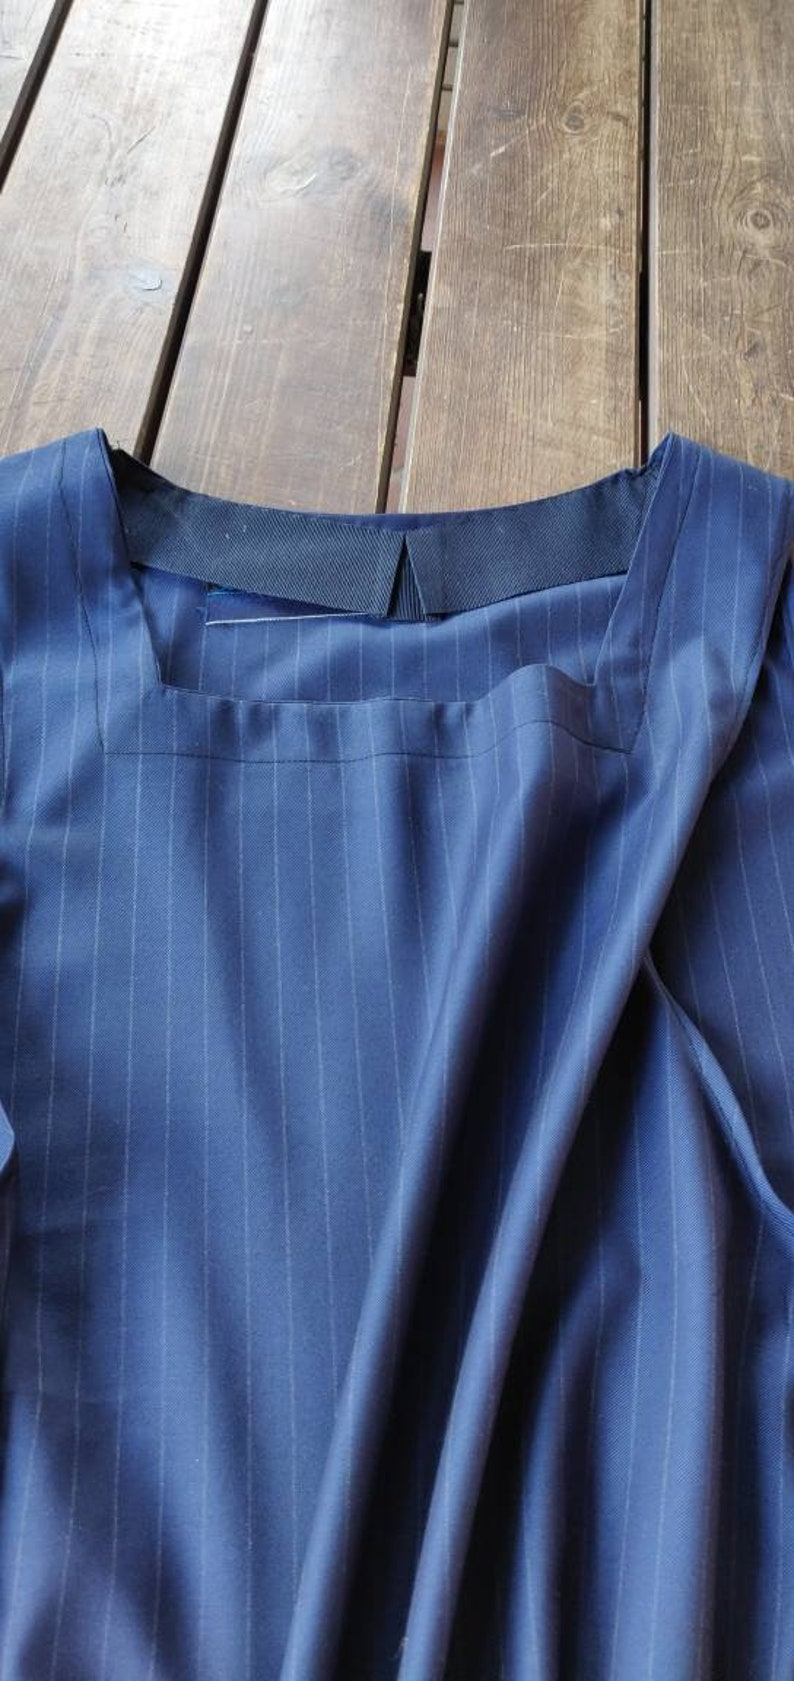 Blue shirtless dress apron with square neckline closed apron in stripes fresh Italian wool fabric house dress and garden